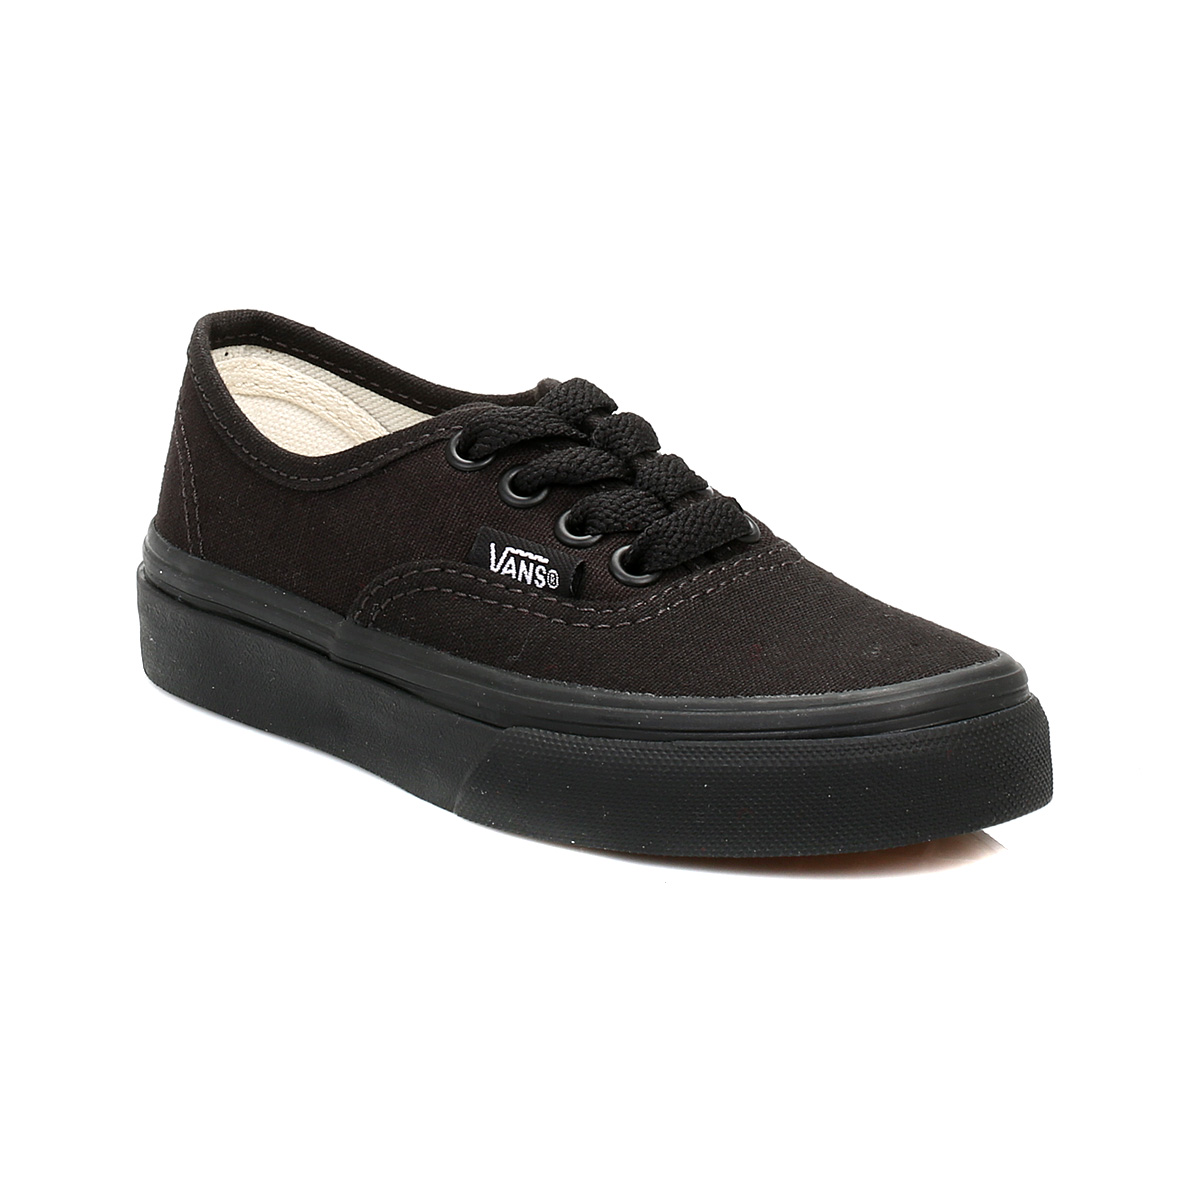 Boys Casual Shoes Size